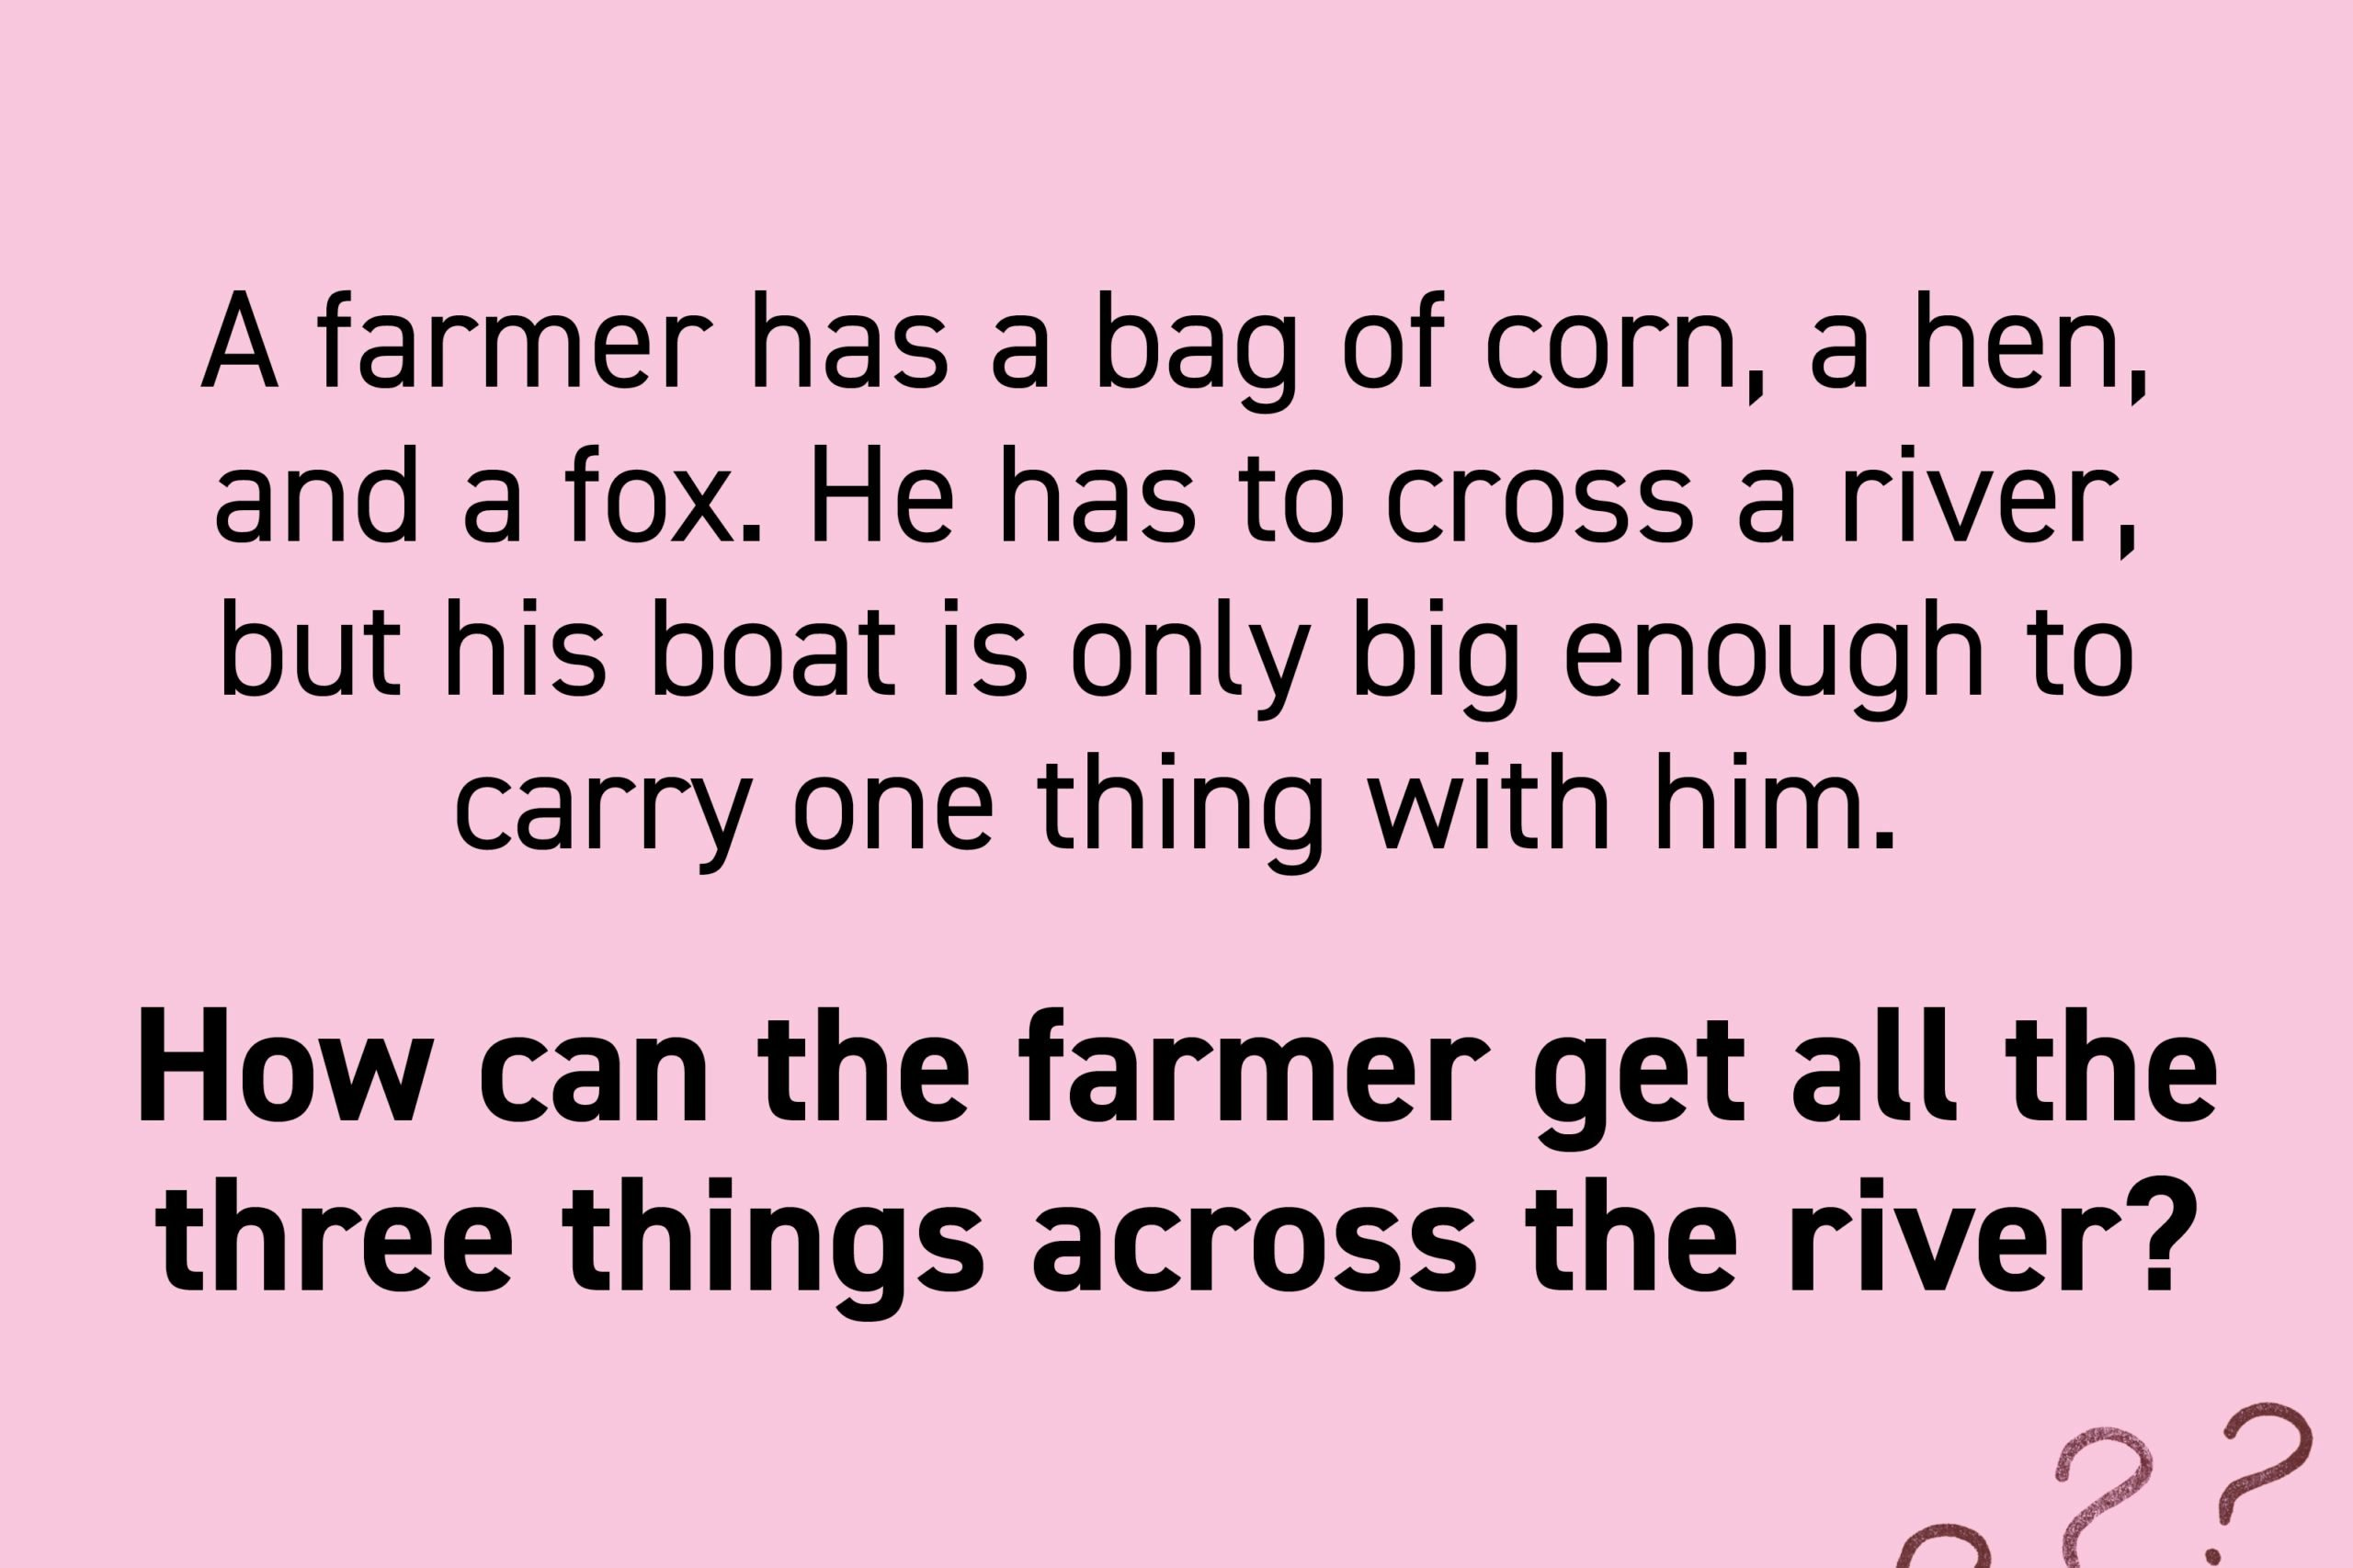 A farmer has a bag of corn, a hen, and a fox. He has to cross a river, but his boat is only big enough to carry one thing with him. If the hen is left with the corn, she will eat it. If the hen is left with the fox, the fox will eat the hen. How can the farmer get all the three things across the river?